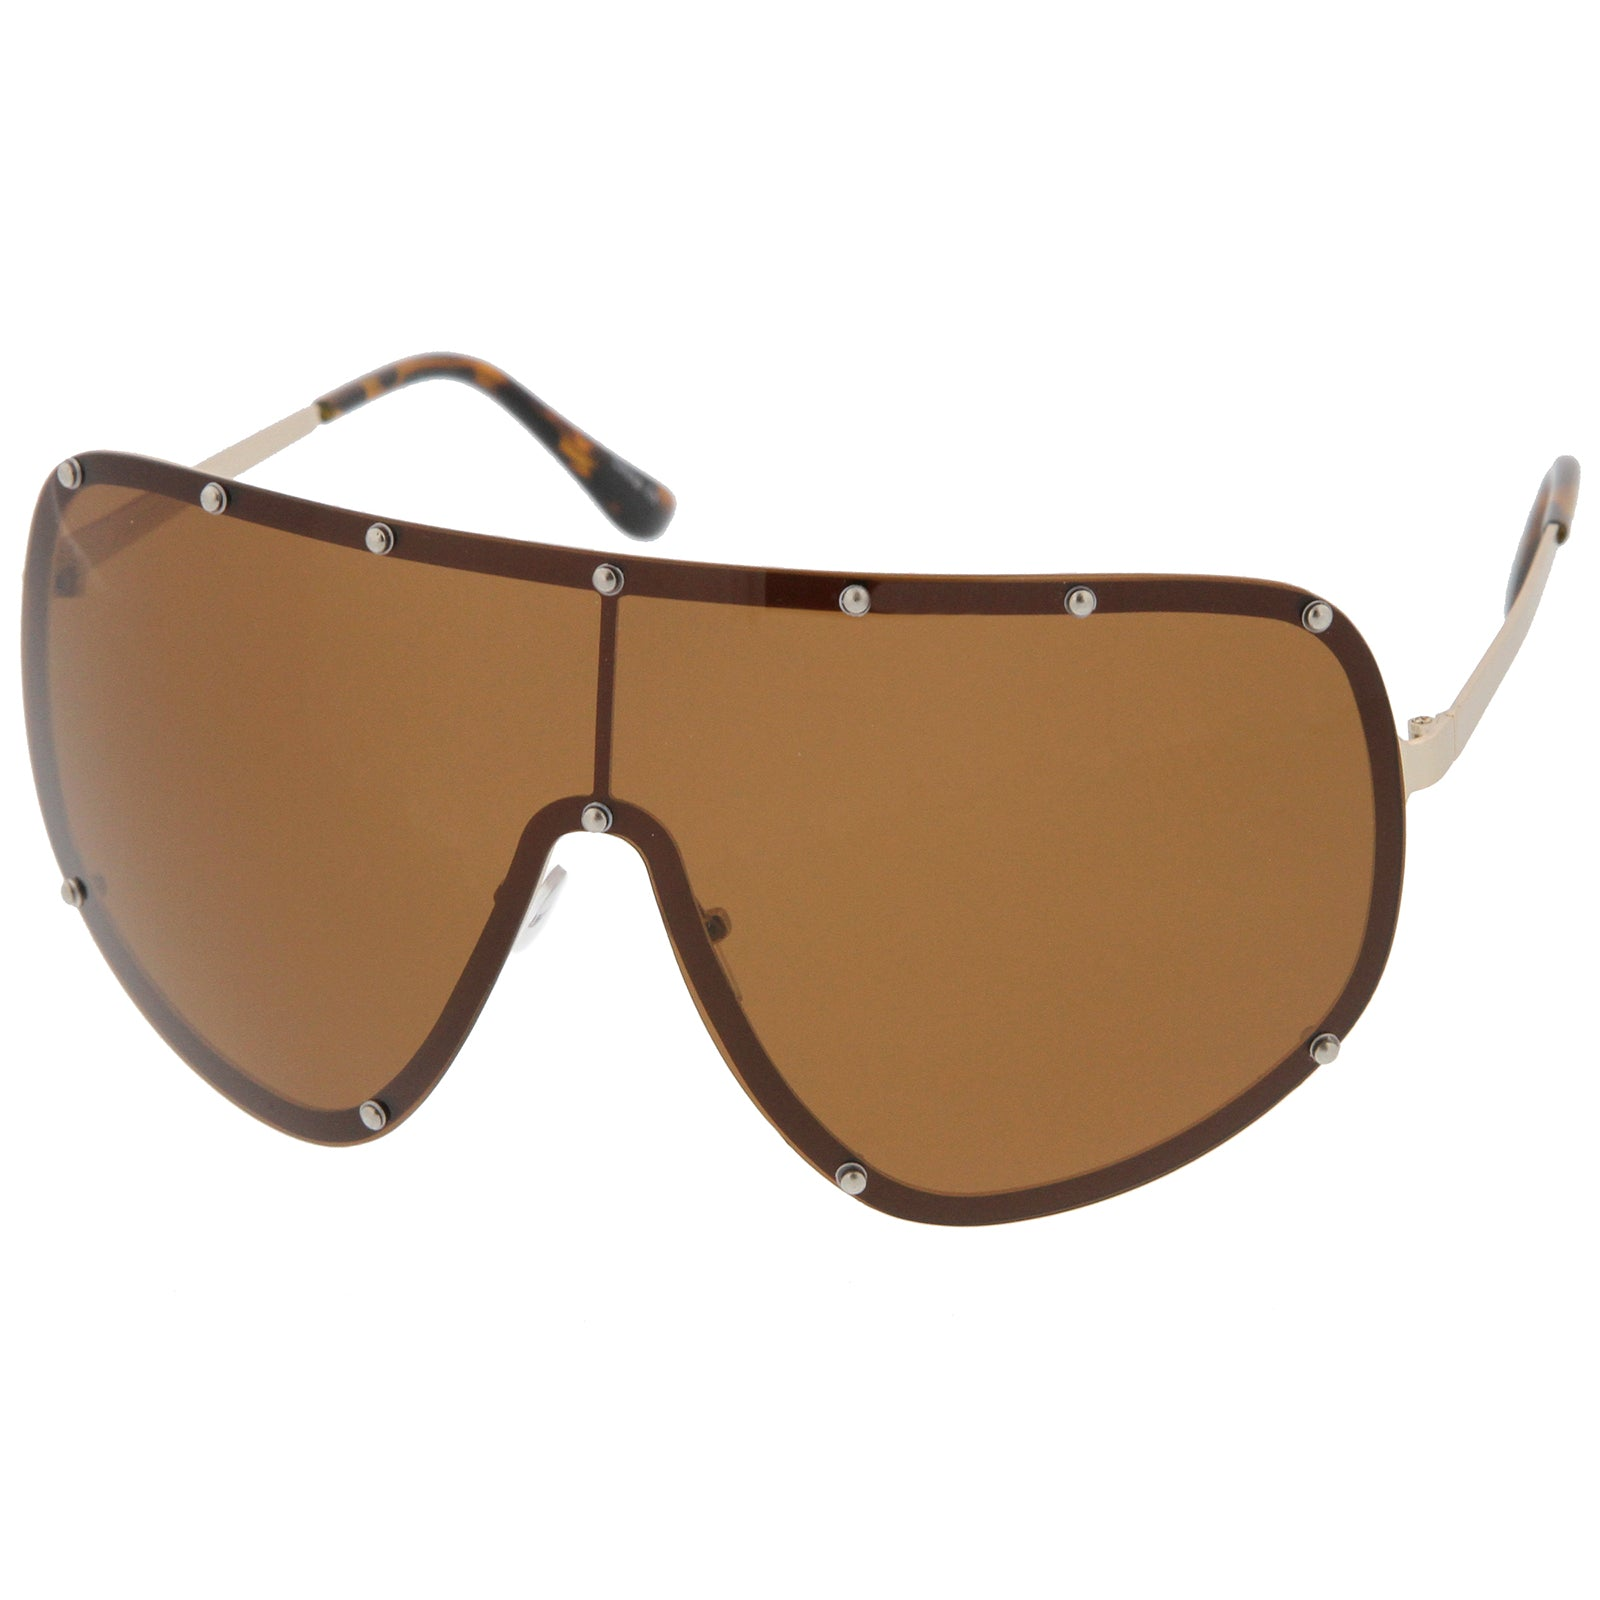 Oversize Flat Top Riveted Rimless Polarized Mono Lens Shield Sunglasses 80mm - sunglass.la - 2